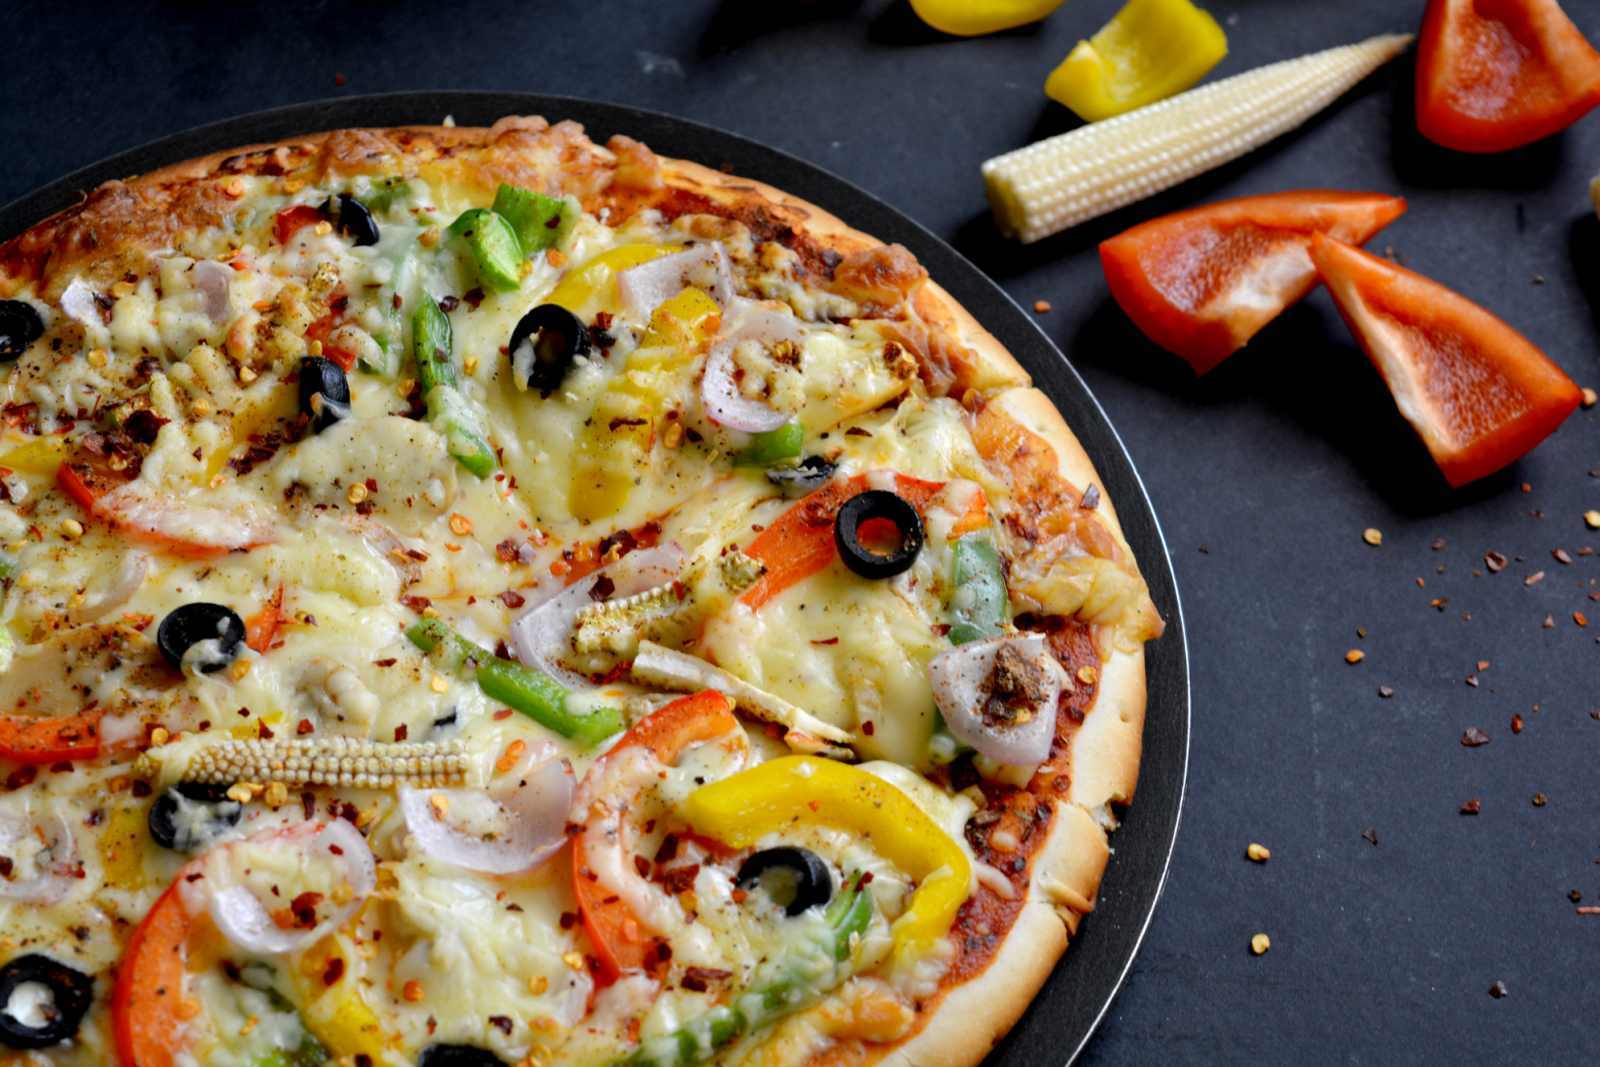 DIY Recipe: Making A Healthy Veggie Pizza At Home cheese with veggies